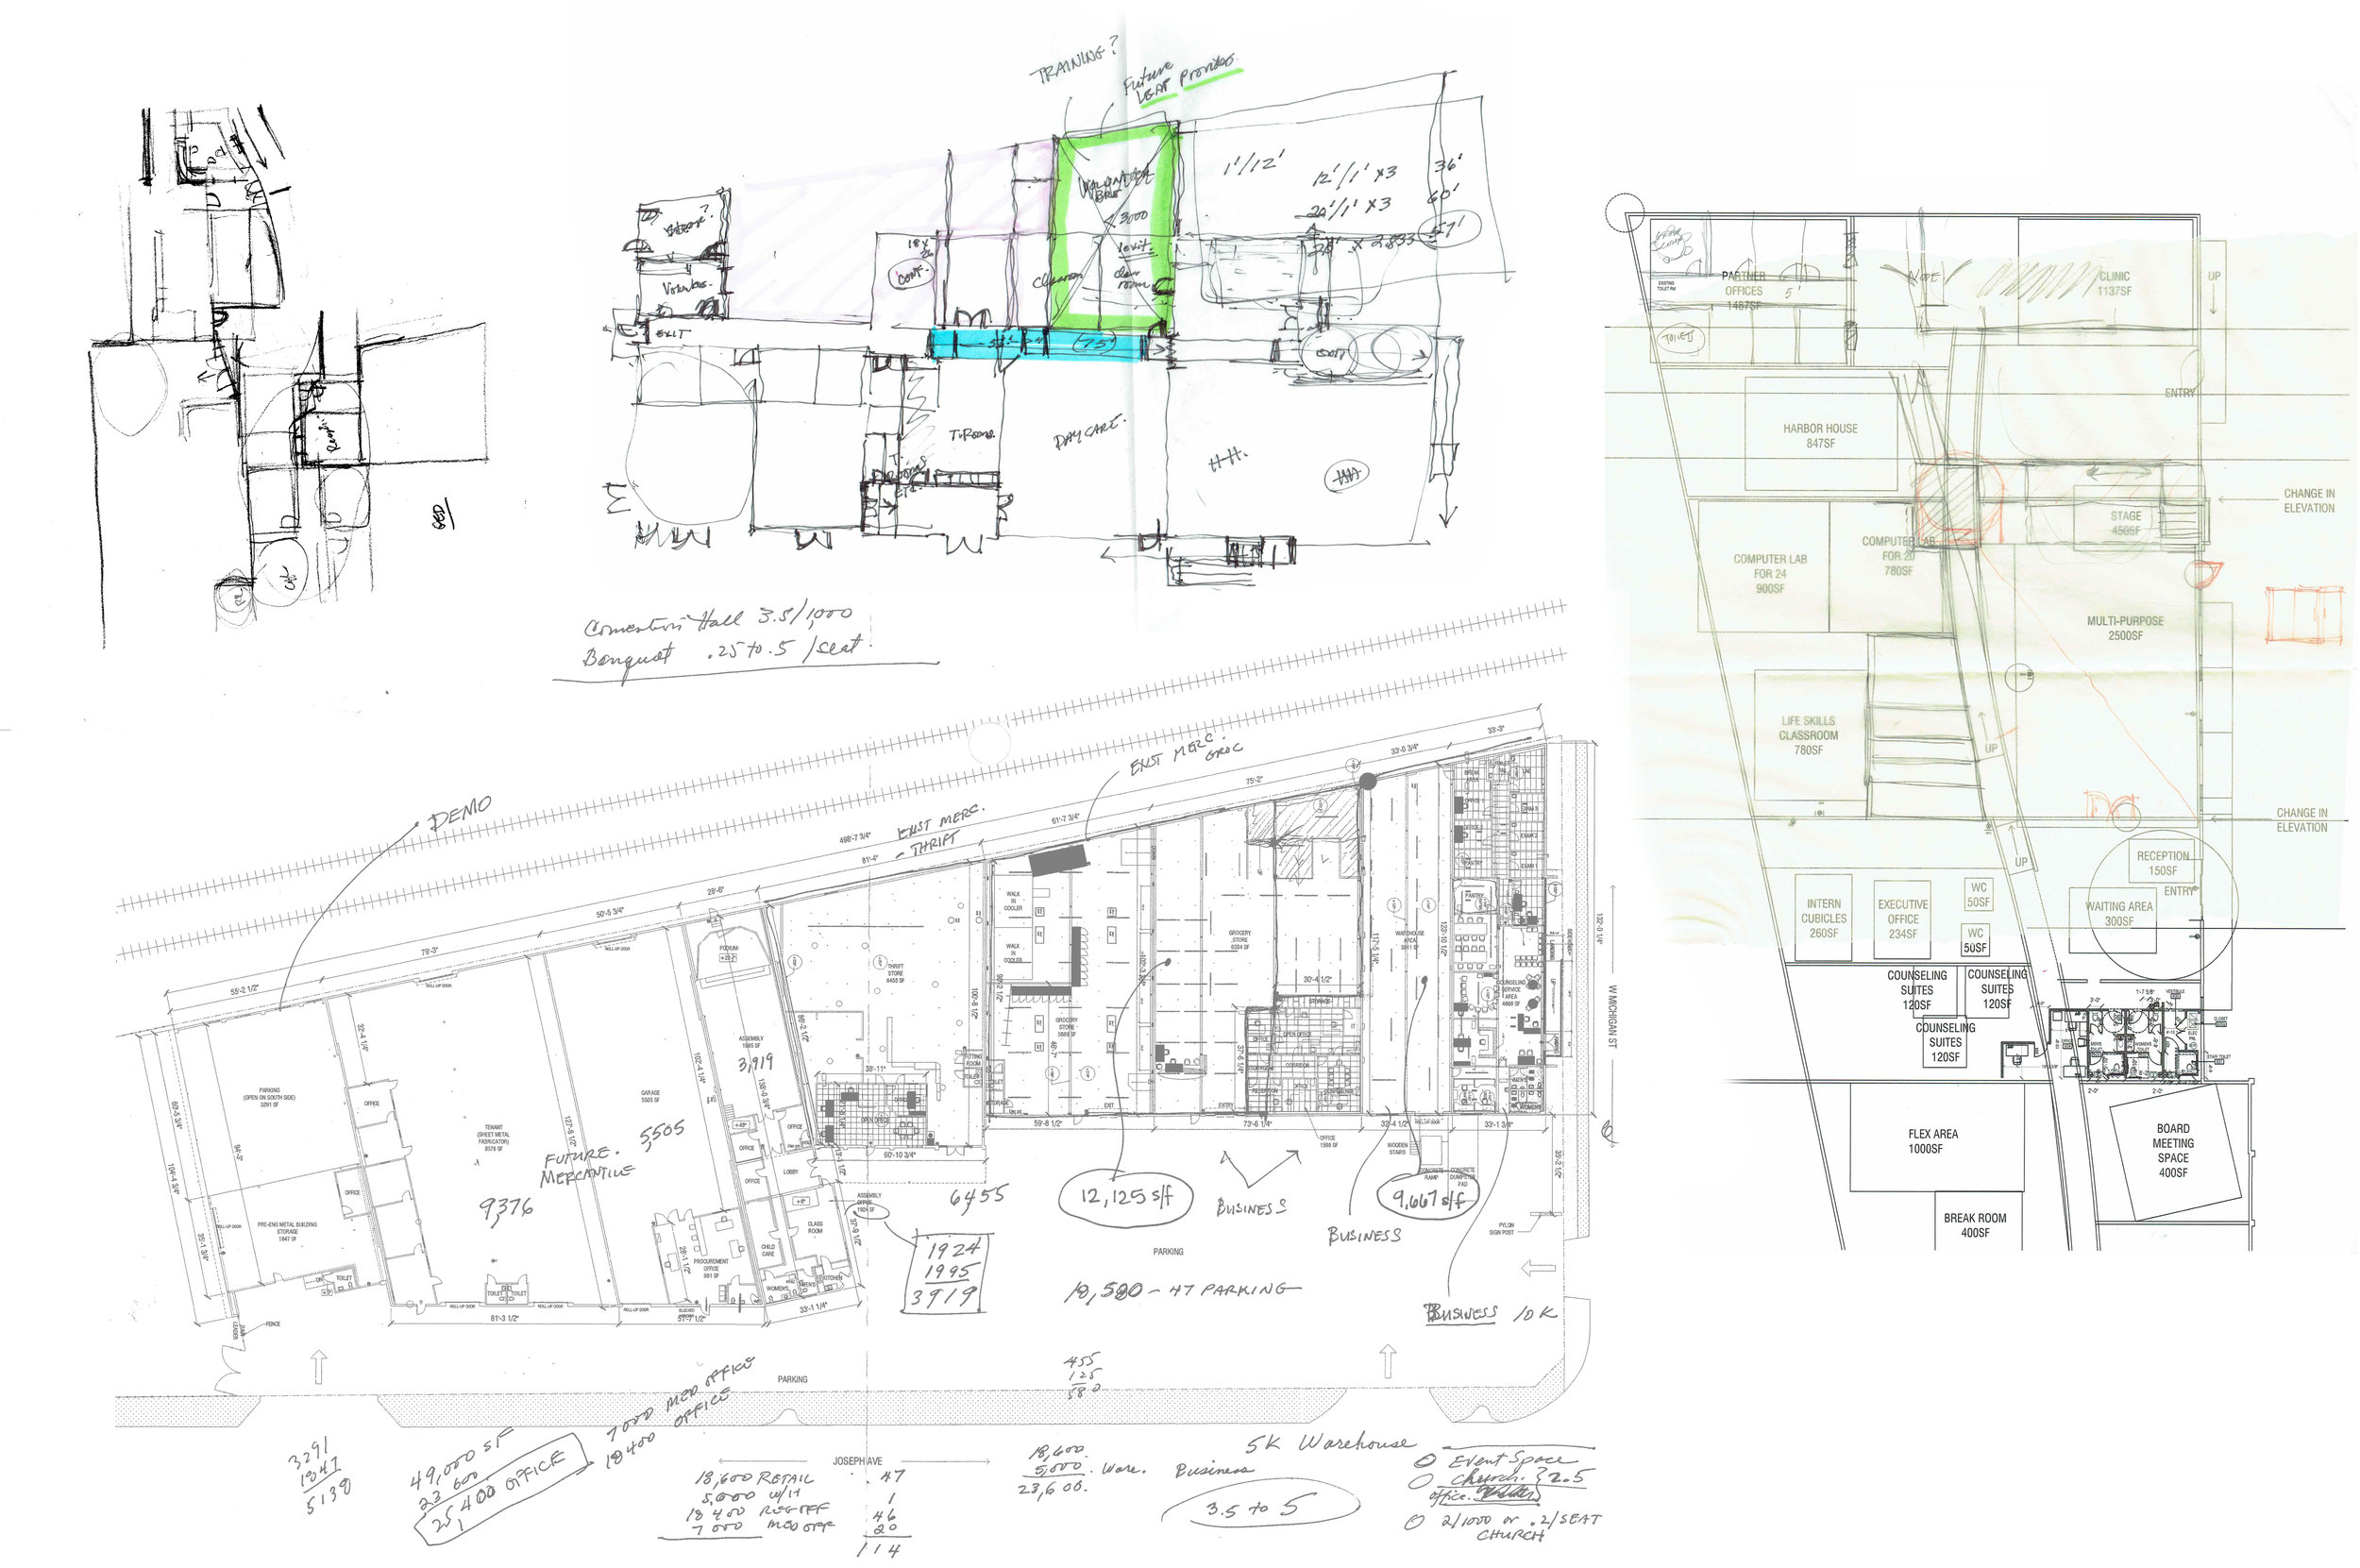 Space Planning and Analysis